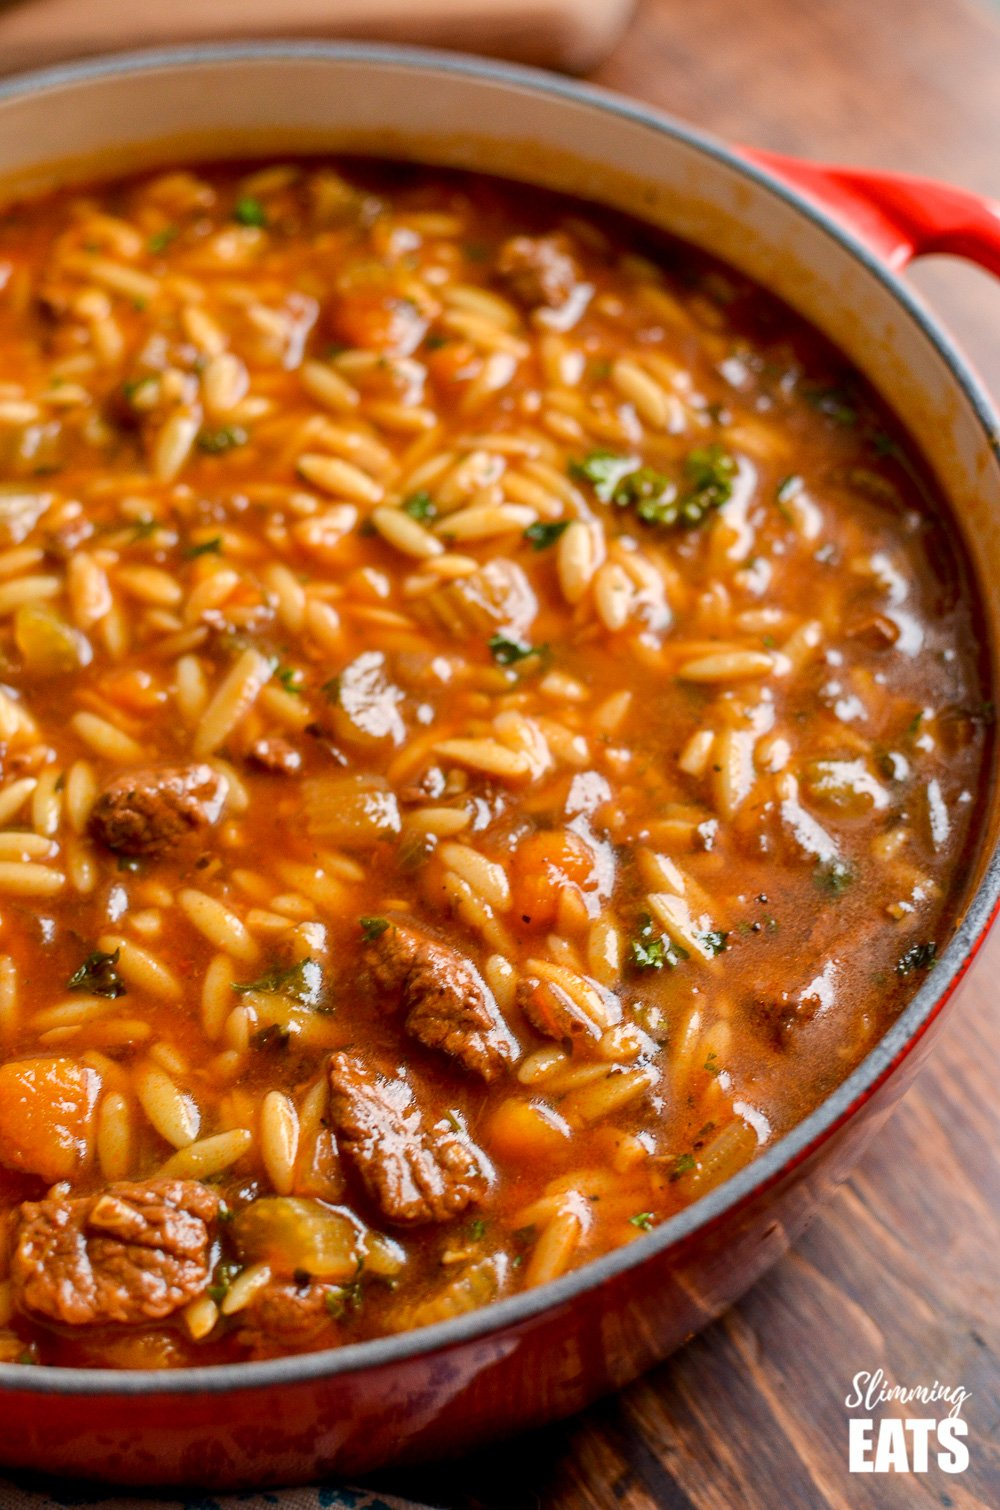 beef celery orzo stew in red dutch oven pot